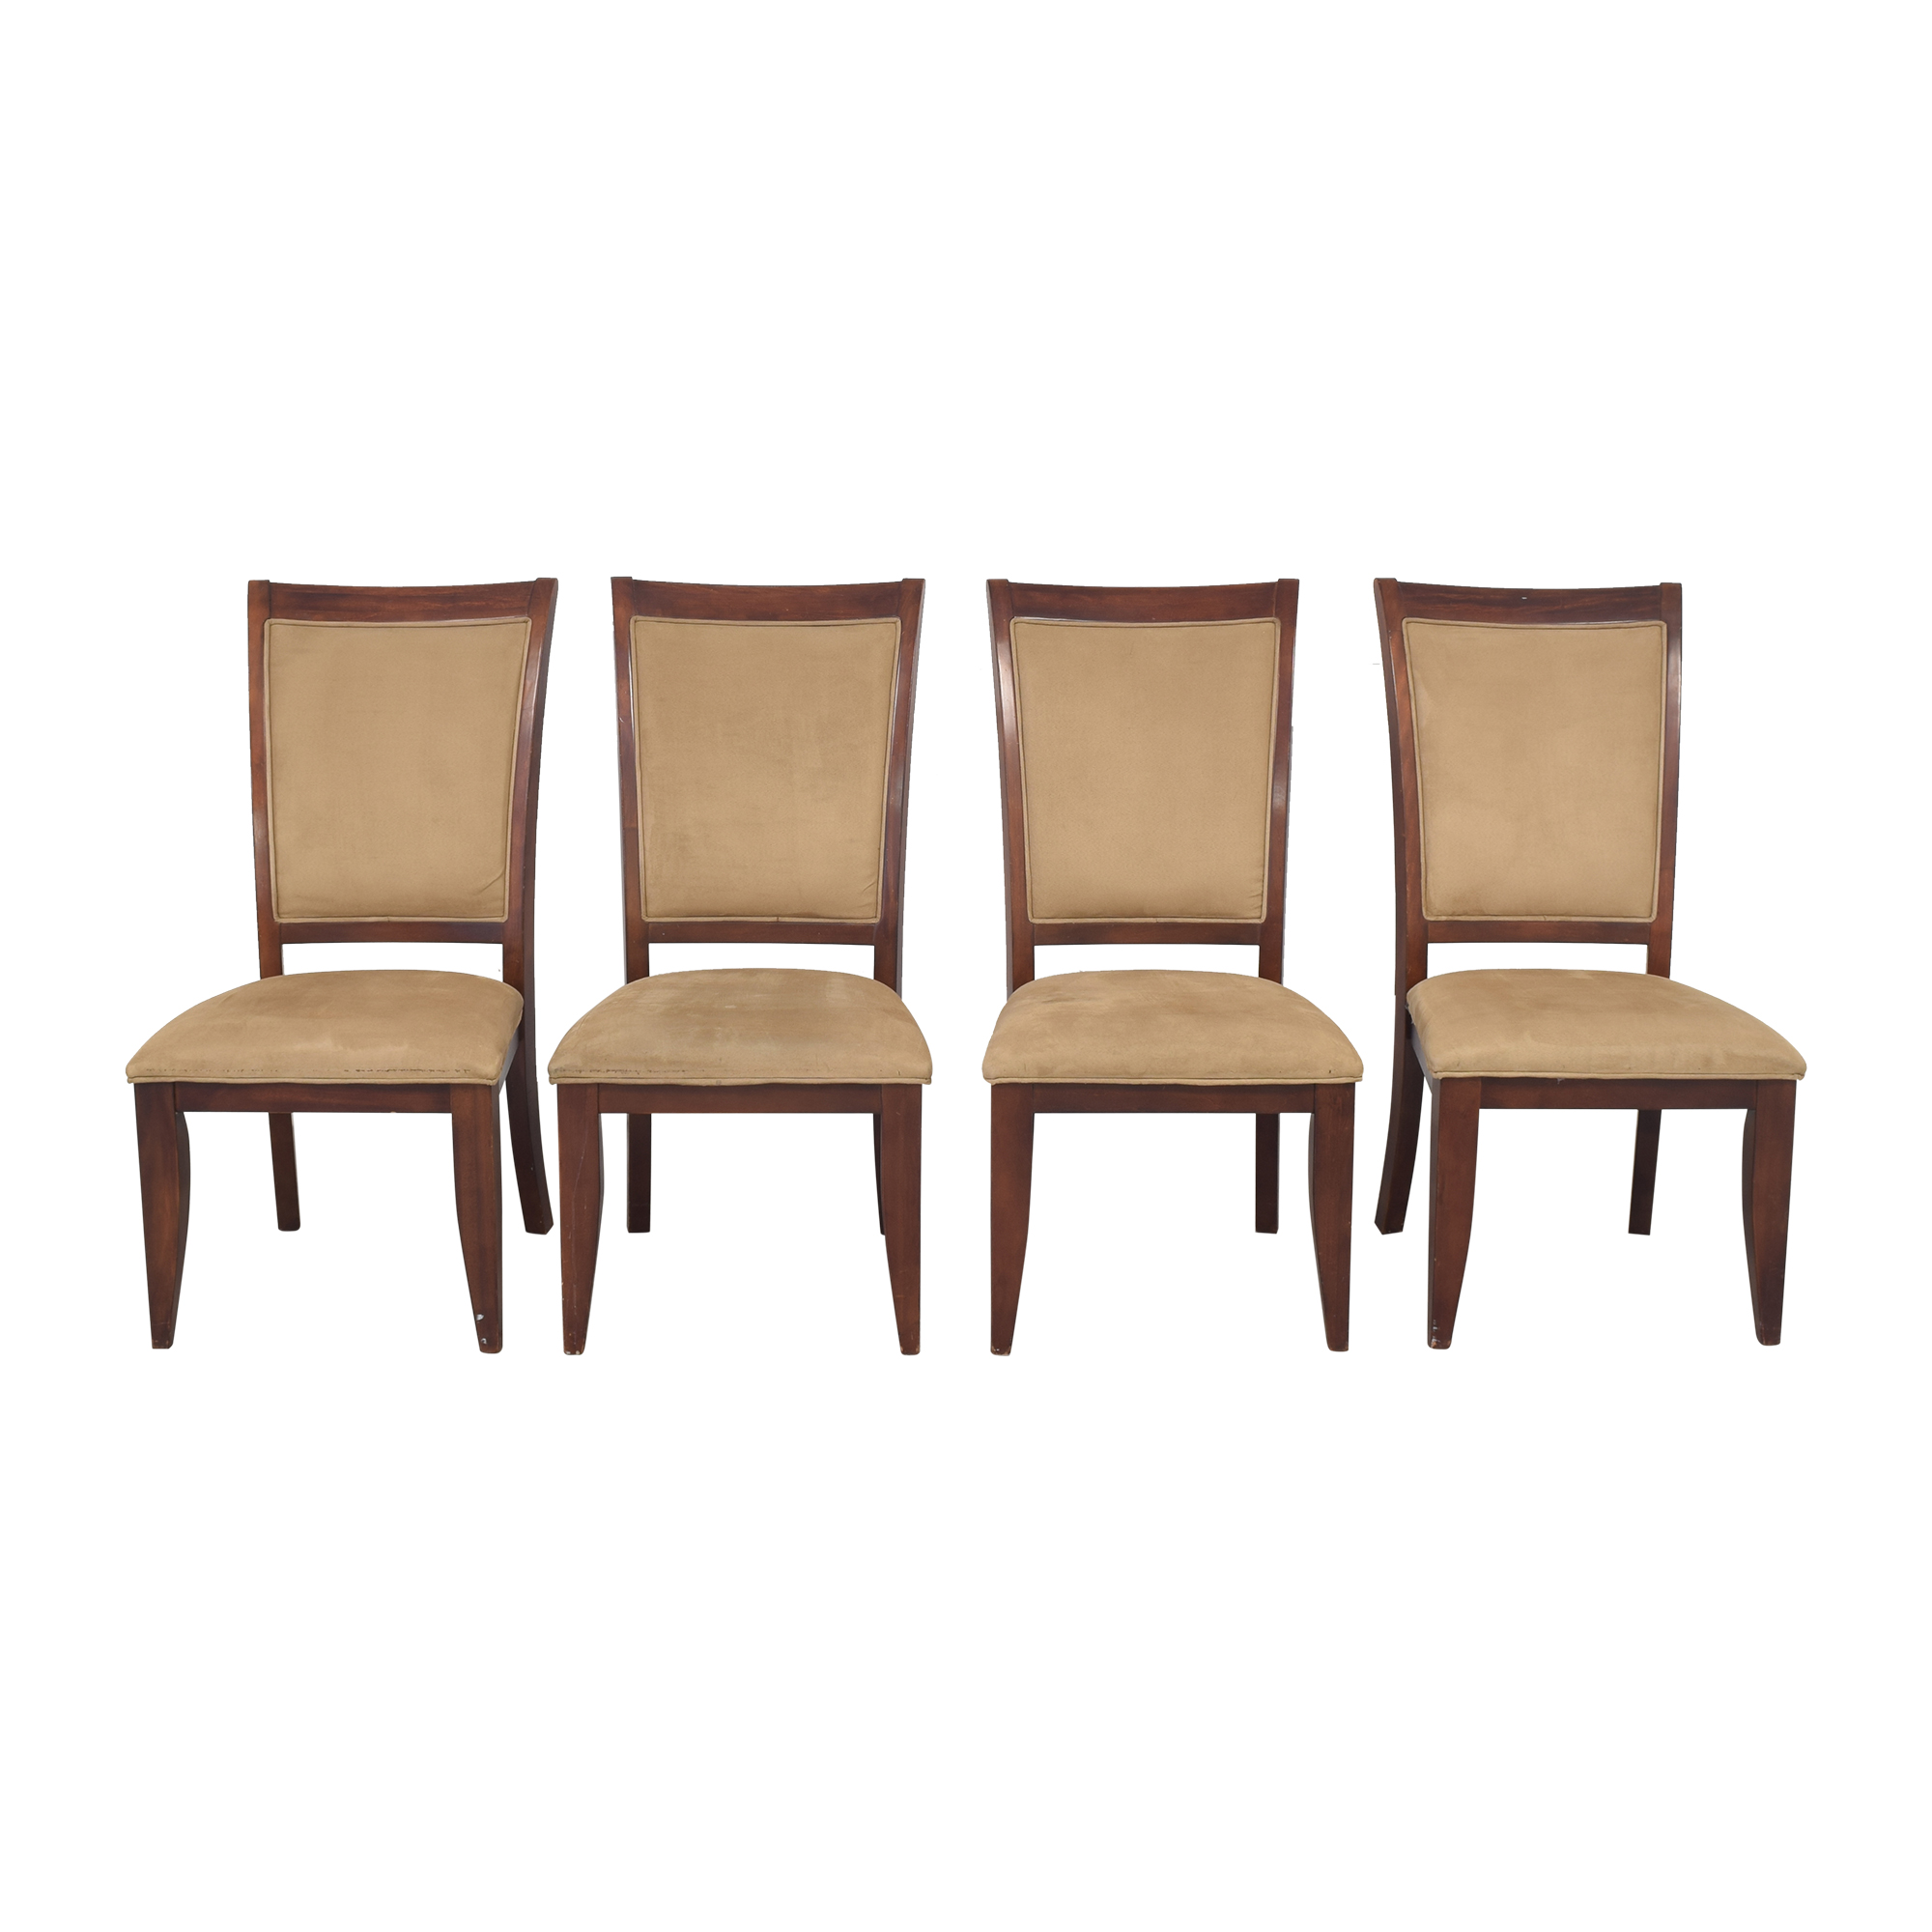 Legacy Classic Furniture Legacy Classic Upholstered Dining Chairs price